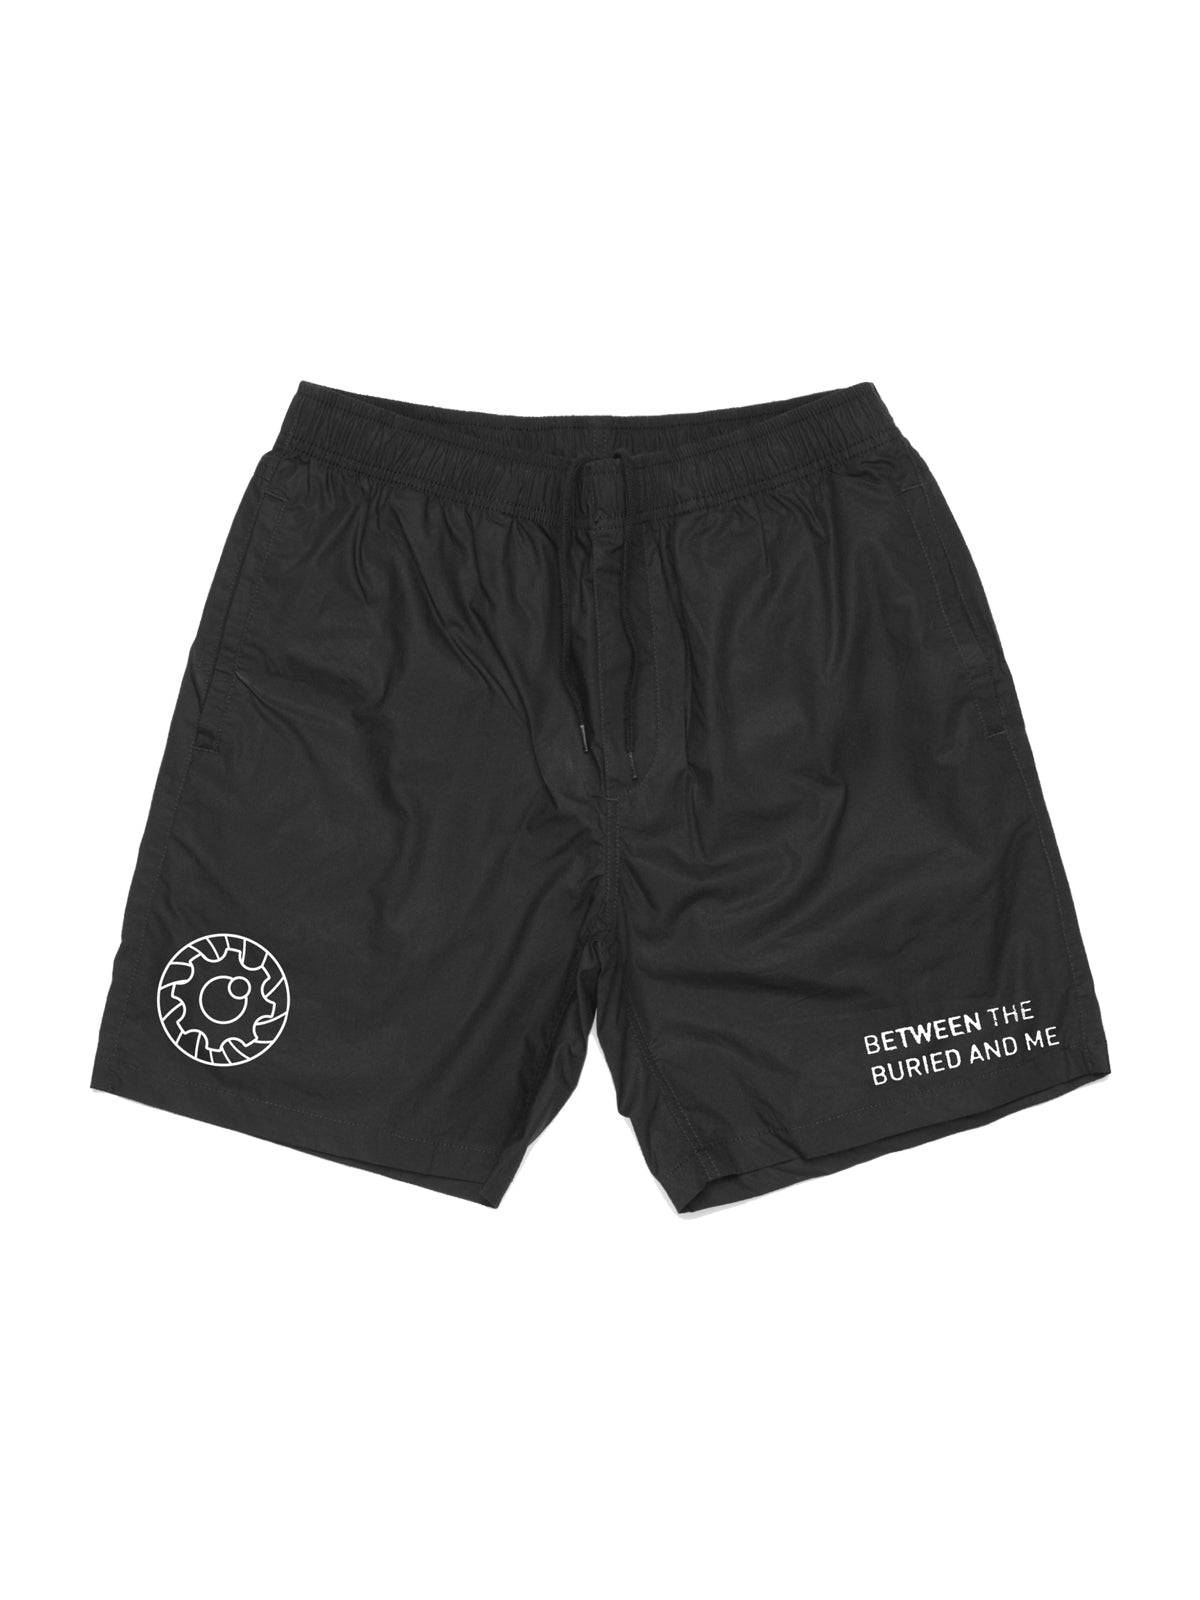 Between the Buried and Me - Automata I Beach Shorts - Merch Limited